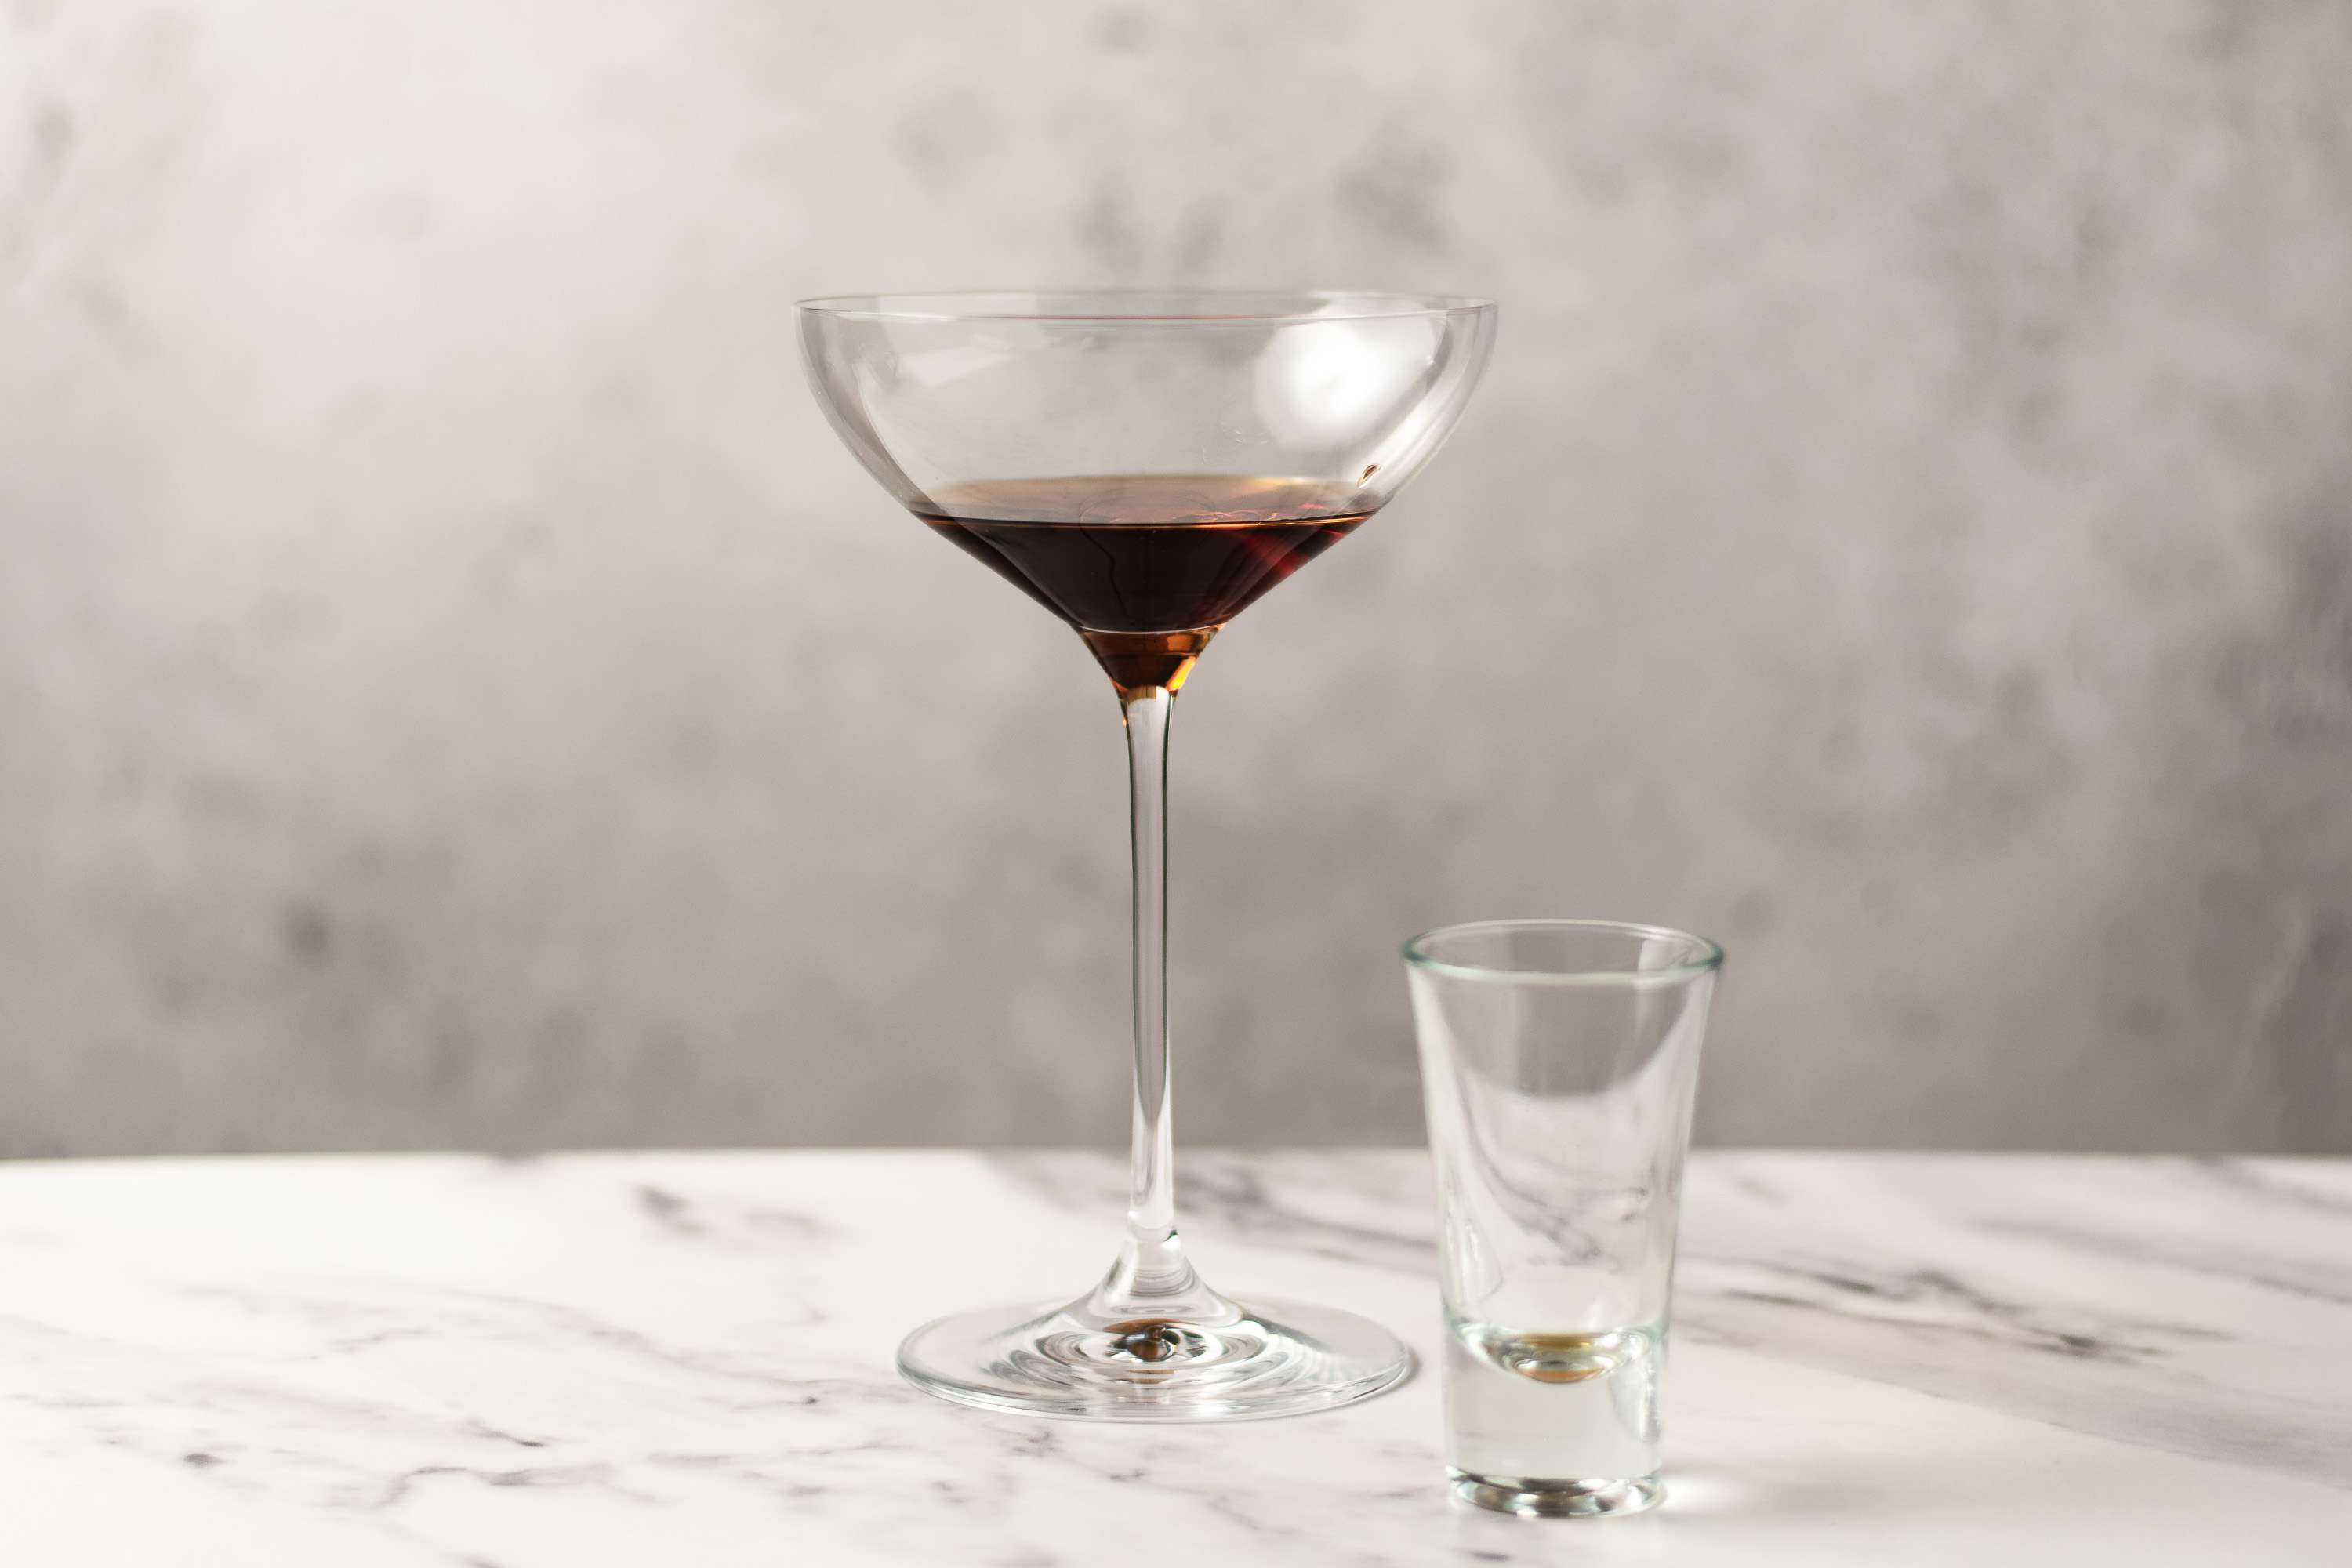 Pour the vermouth directly into a cocktail glass without ice